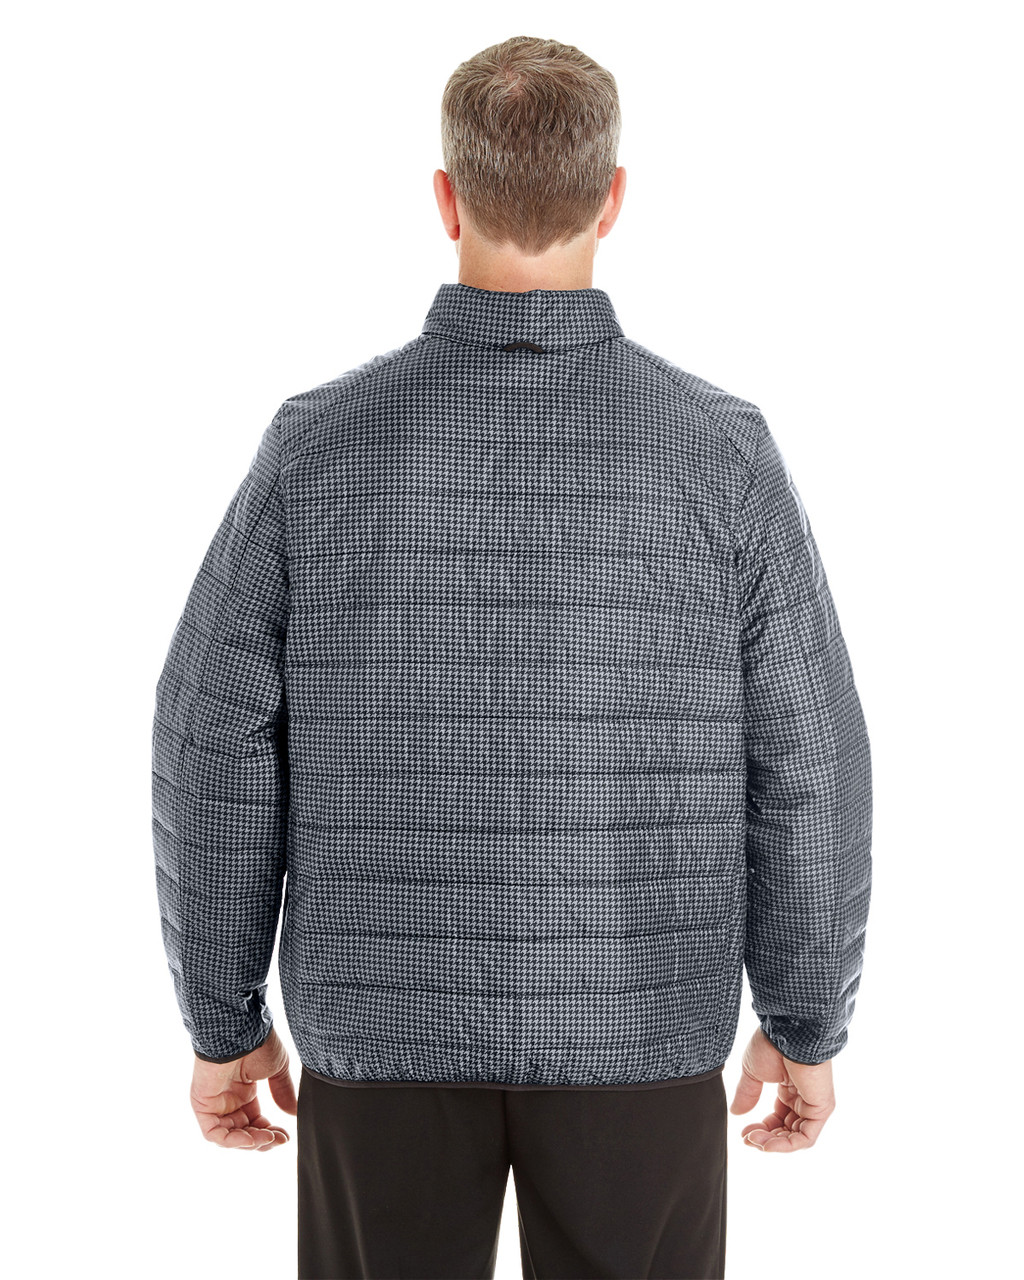 Houndstooth - BACK - NE701 Ash City - North End Men's Portal Interactive Printed Packable Puffer Jacket | Blankclothing.ca